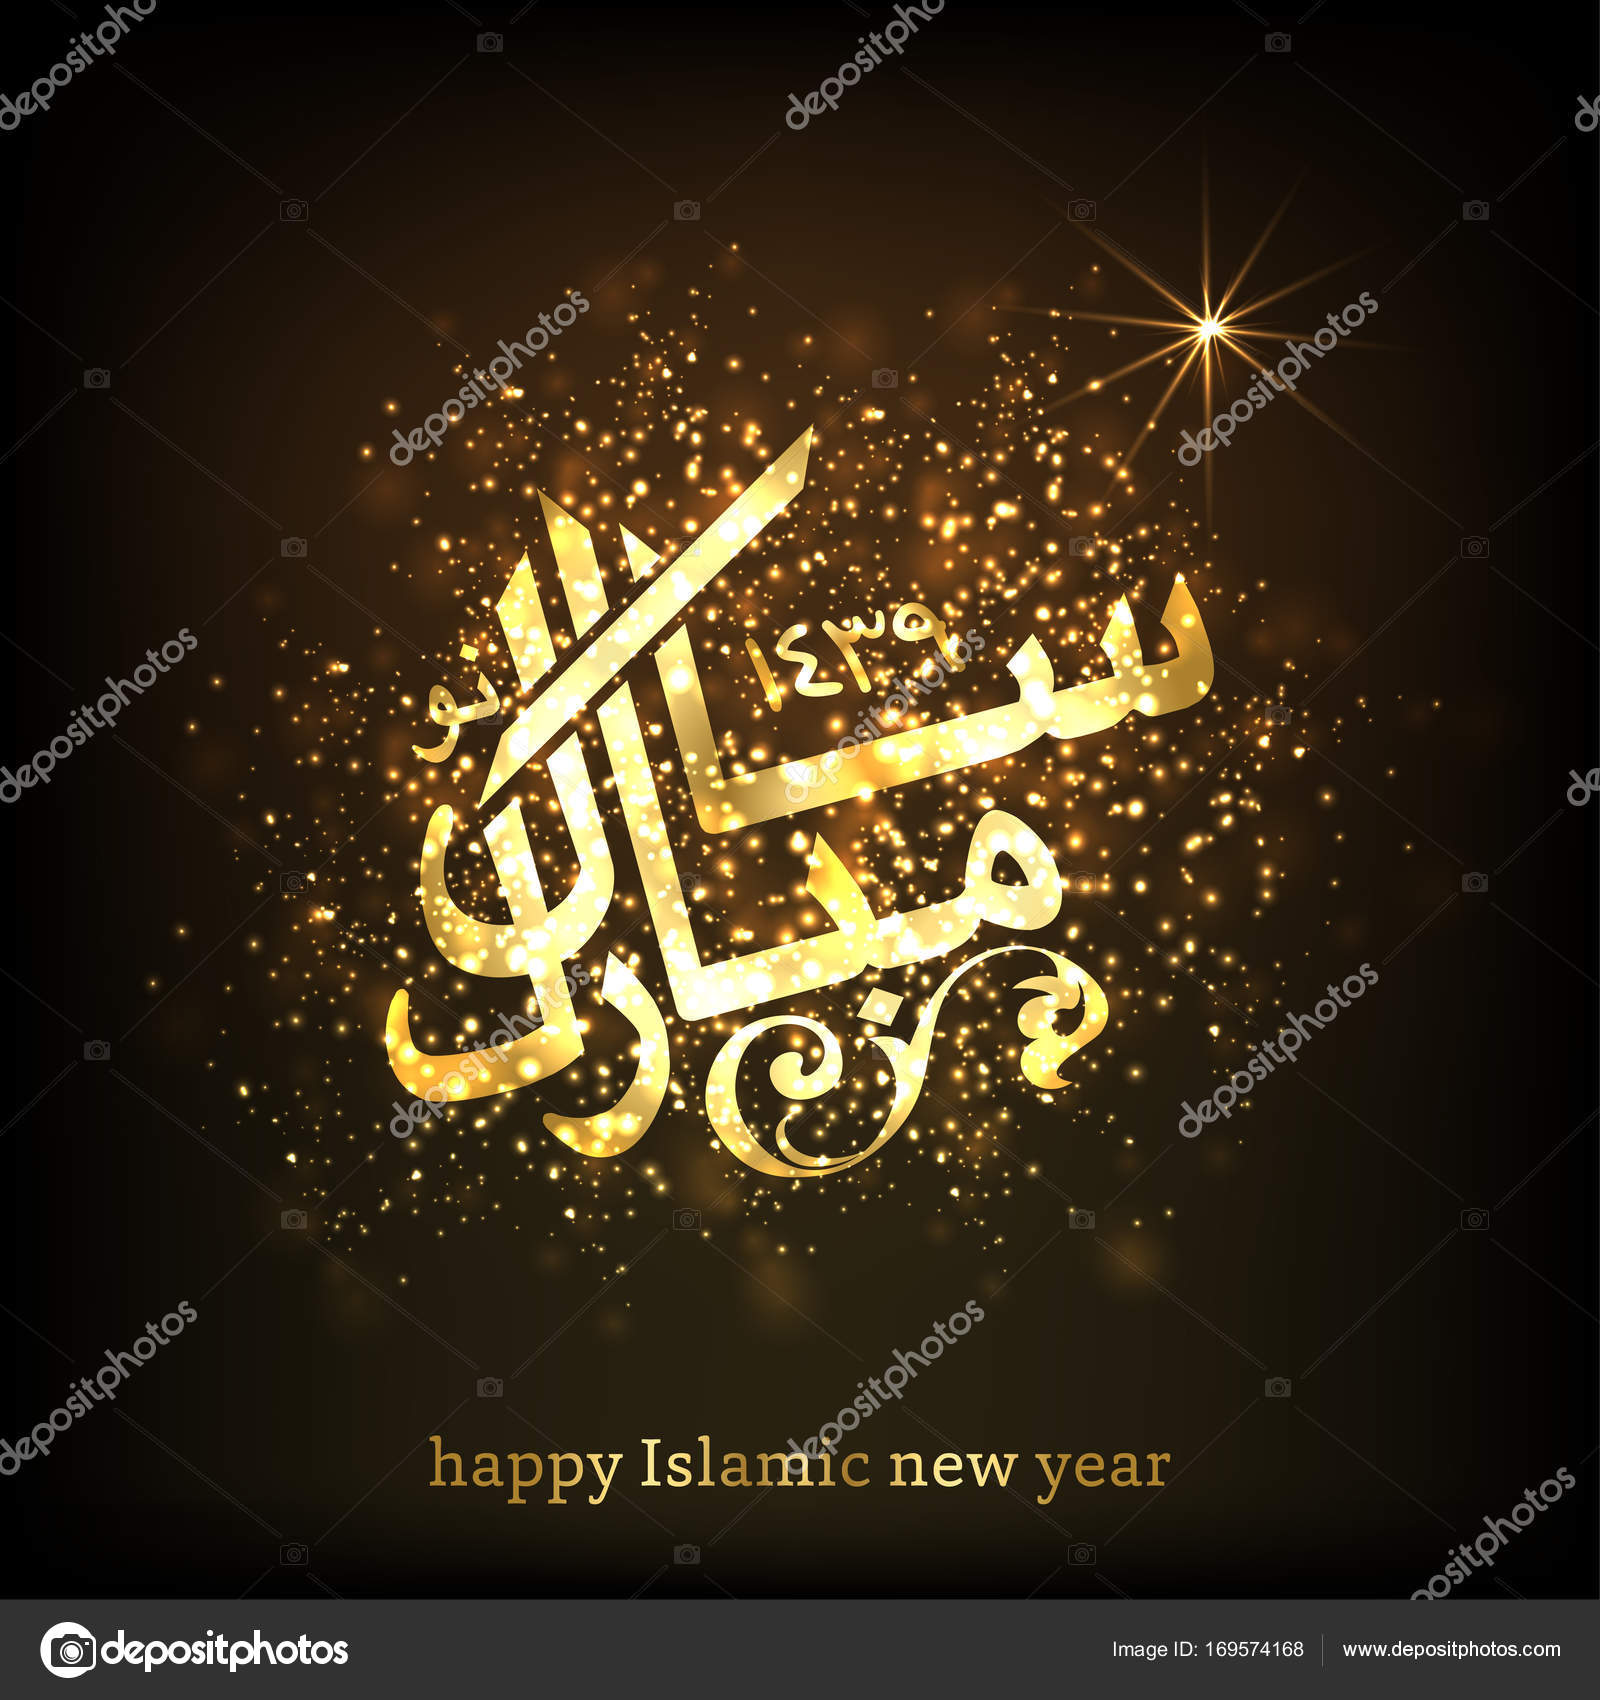 Greeting card for islamic new year stock vector ibrandify 169574168 greeting card for islamic new year stock vector m4hsunfo